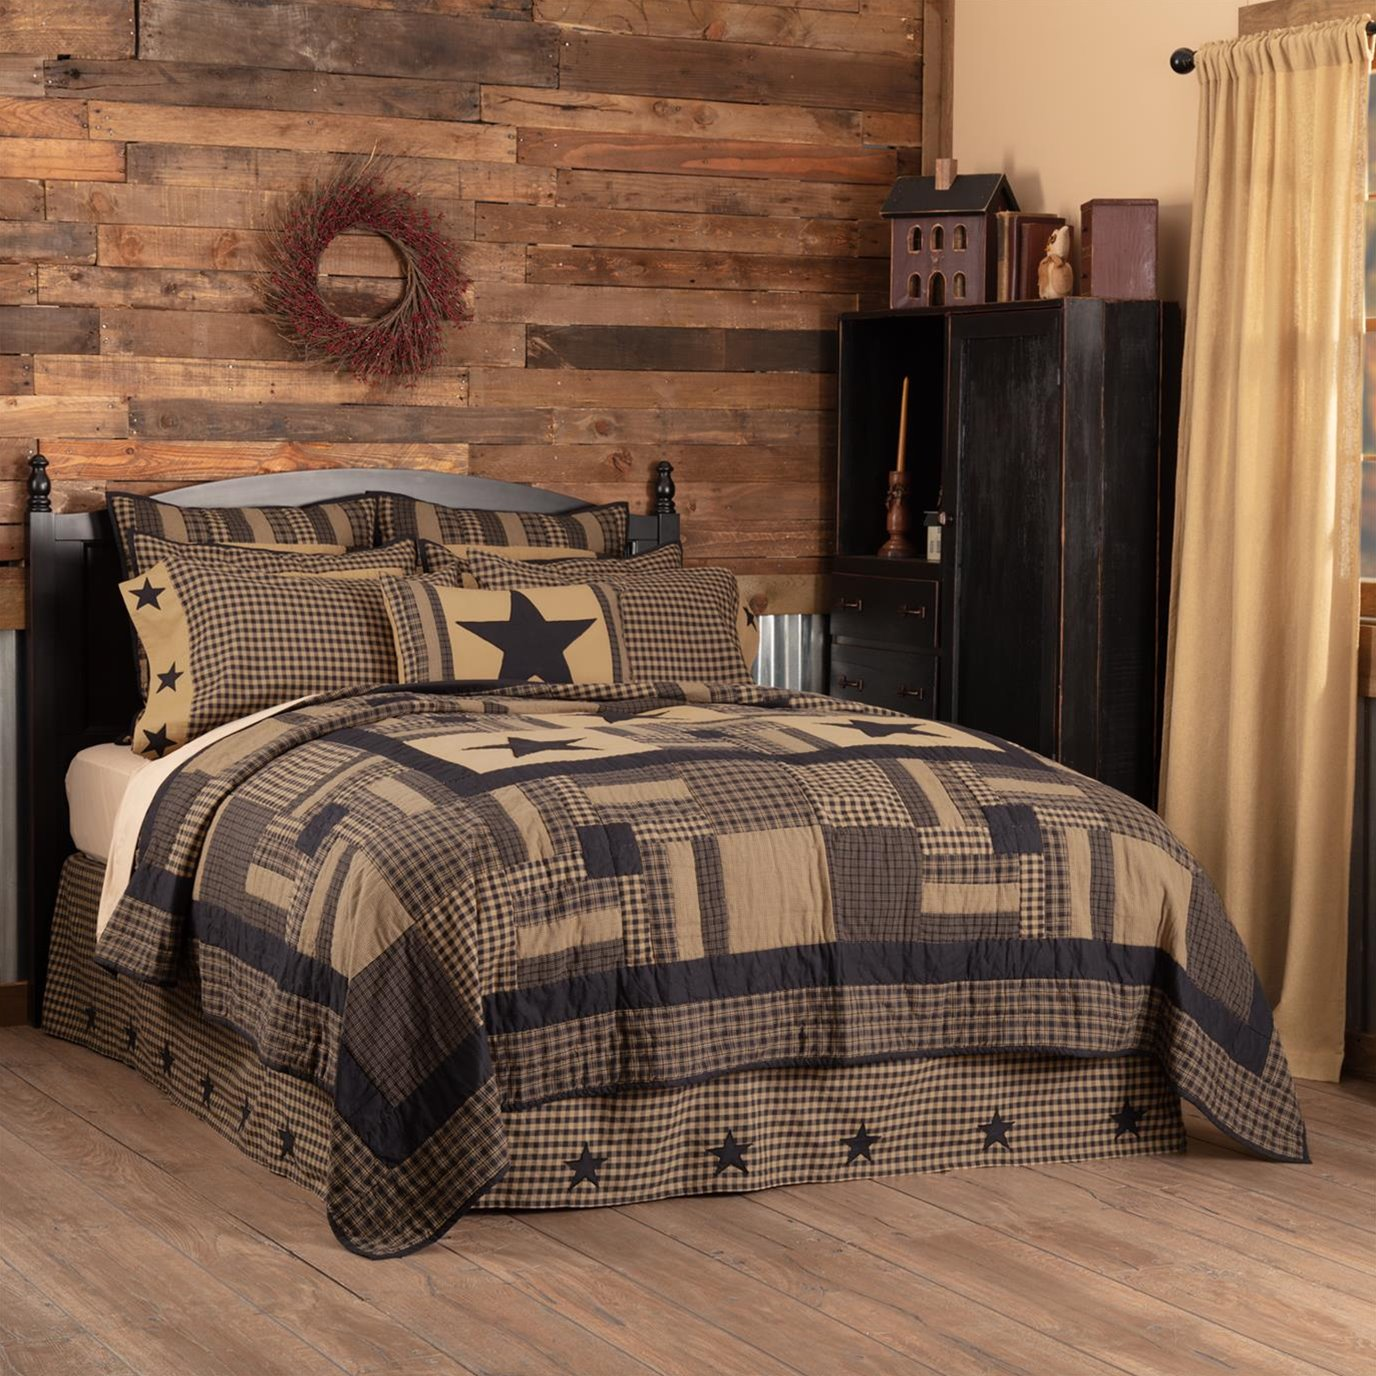 Black Check Star California King Quilt 130Wx115L